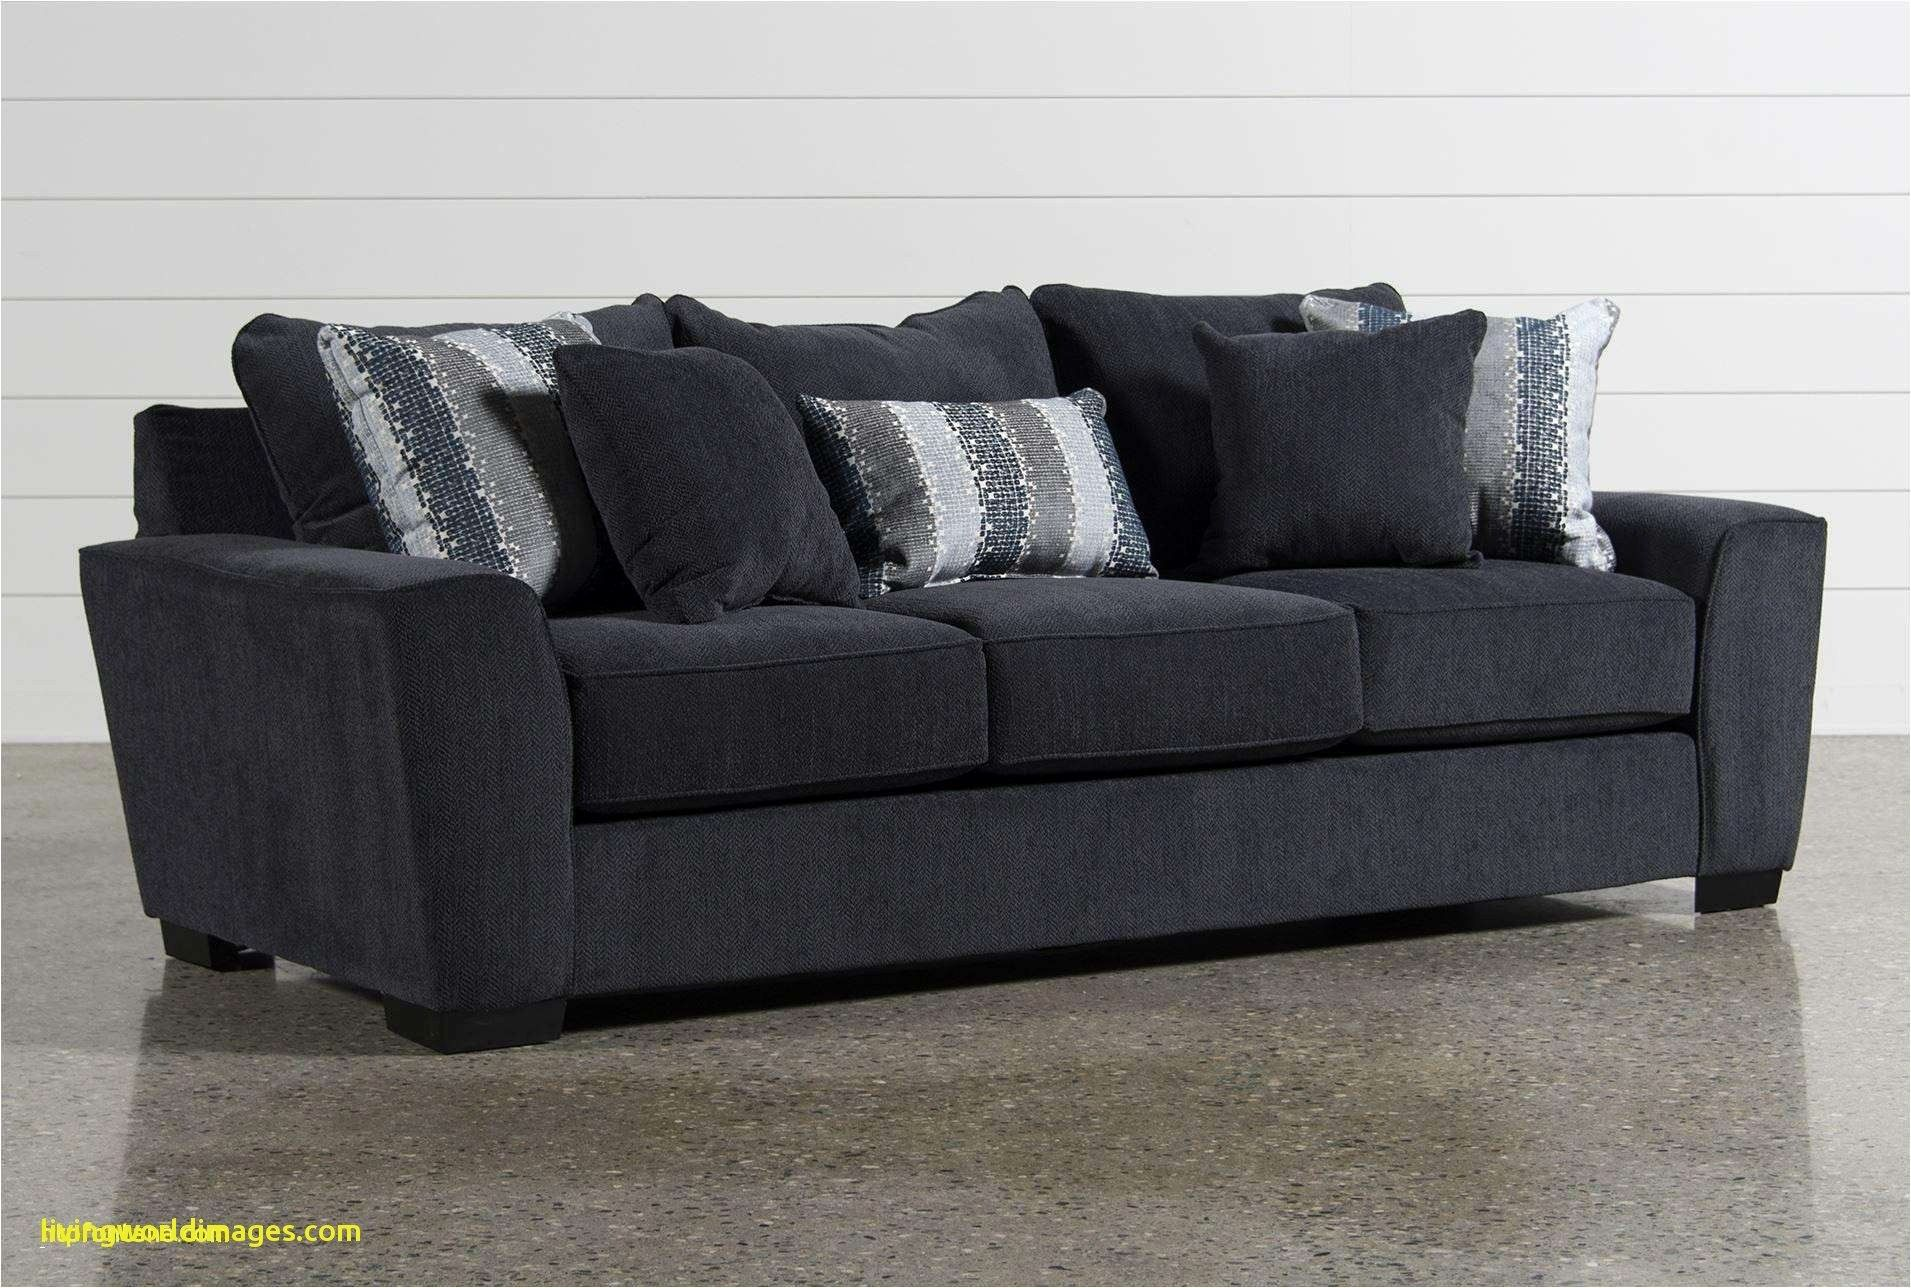 Pin By Jenifer Dun On Best Couches Ideas Couch Sofa Pull Out Couch